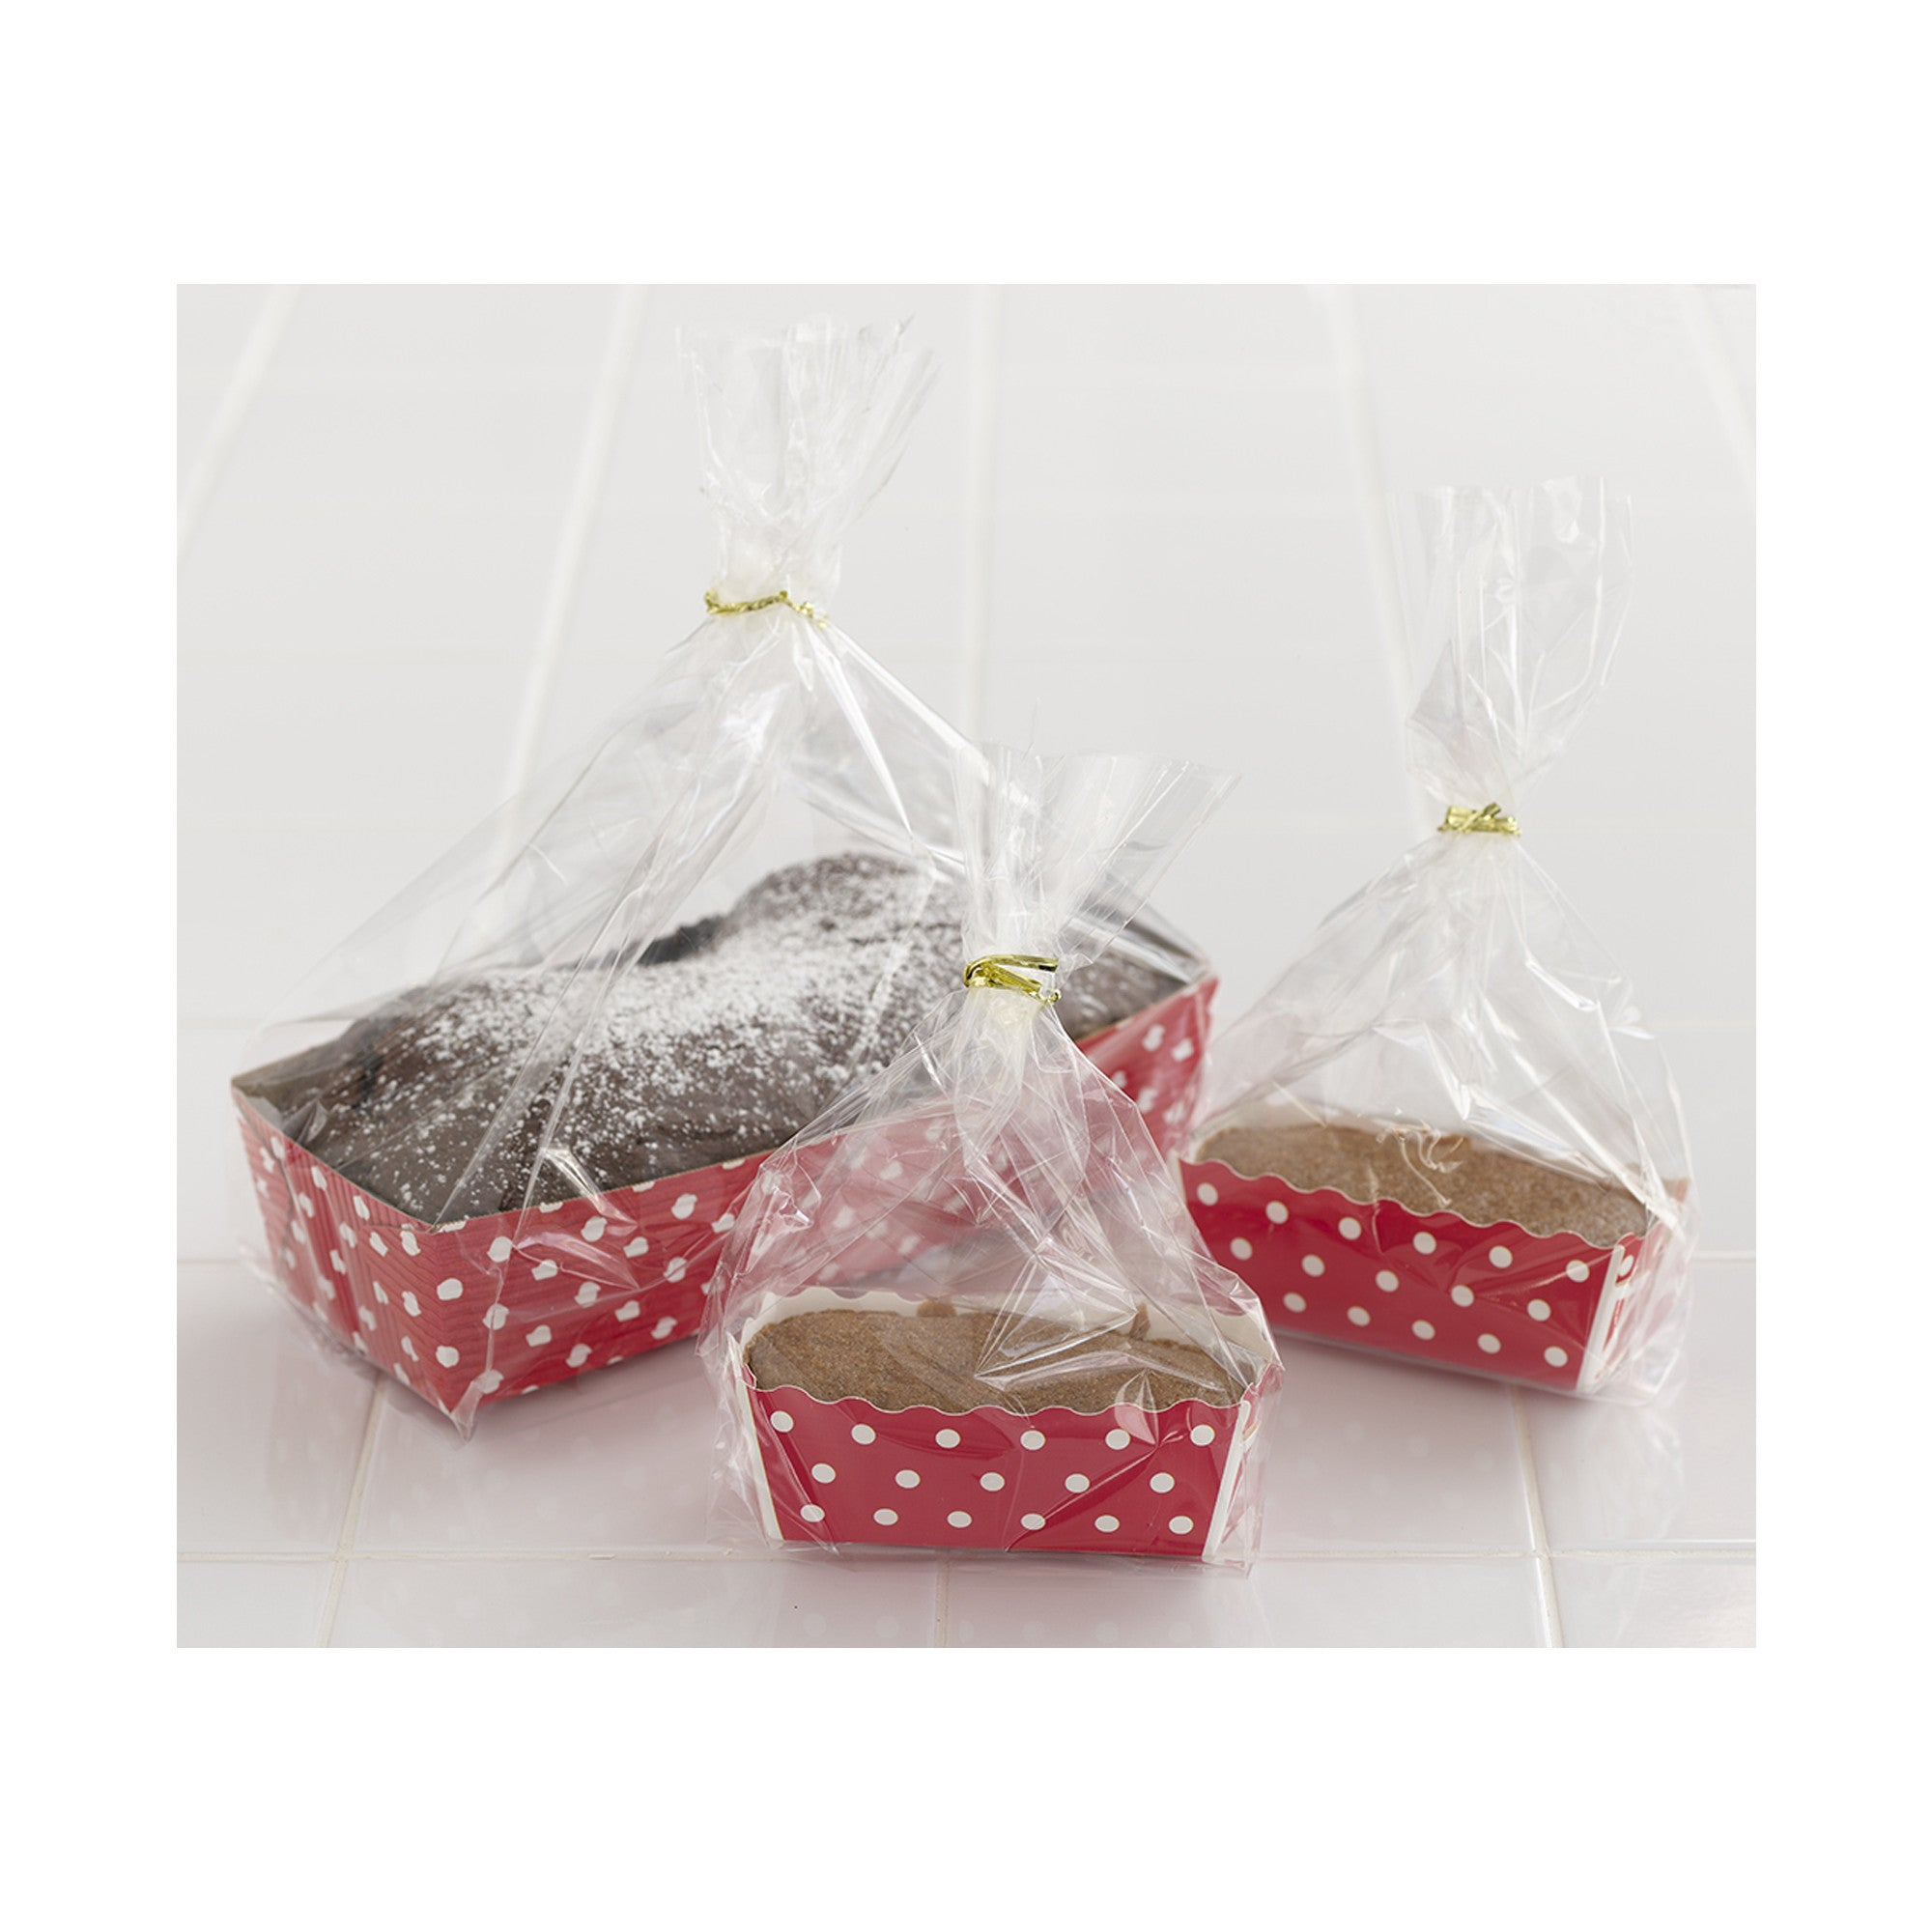 Bags + Twist Ties, Gift Bags for Plastic Baking Cup - Paper Bake Shop